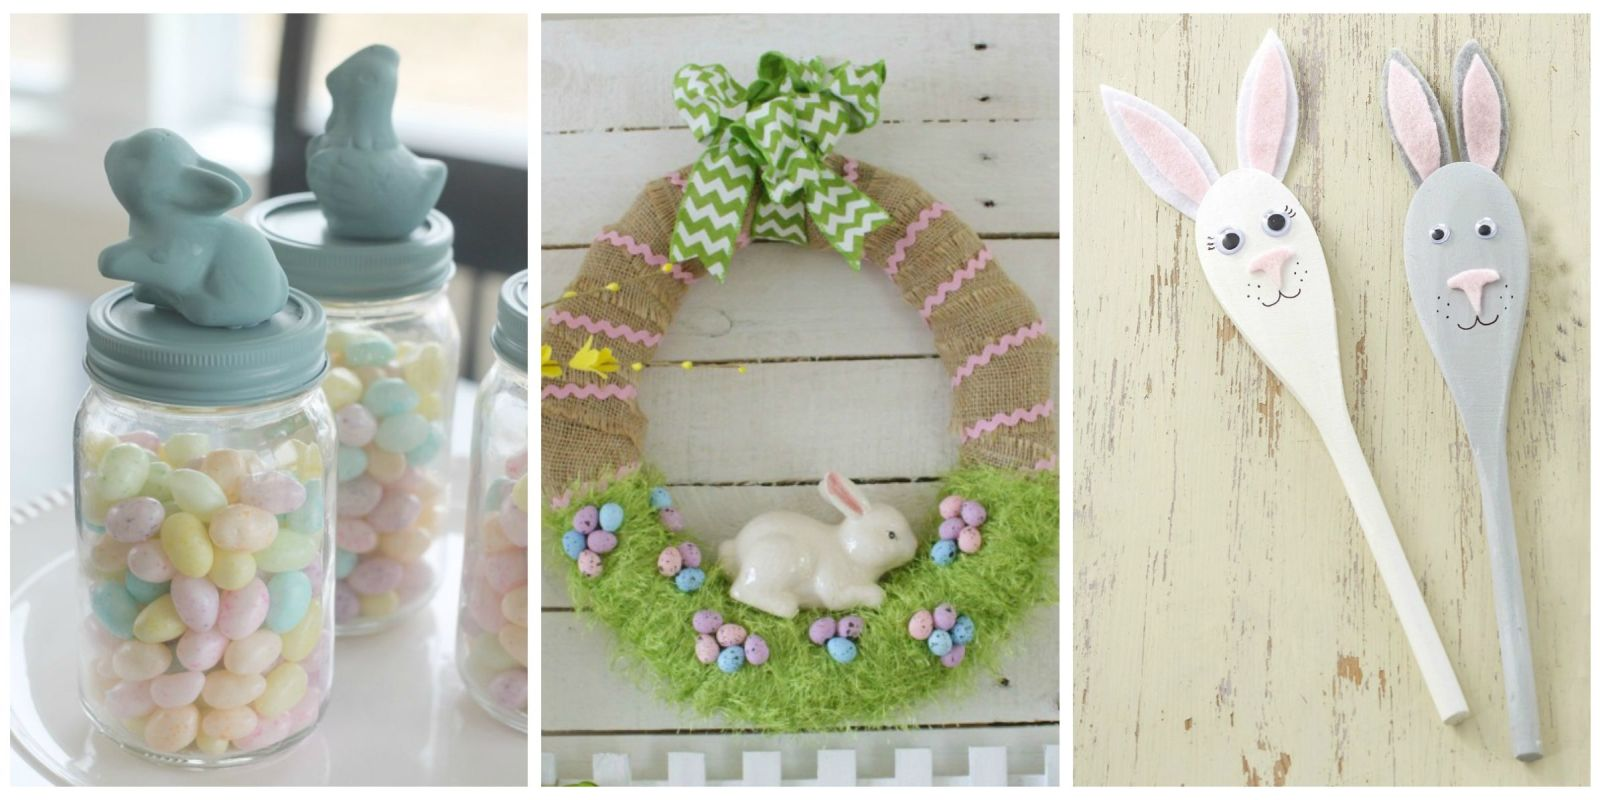 30 Diy Easter Decorations From Pinterest Homemade Easter